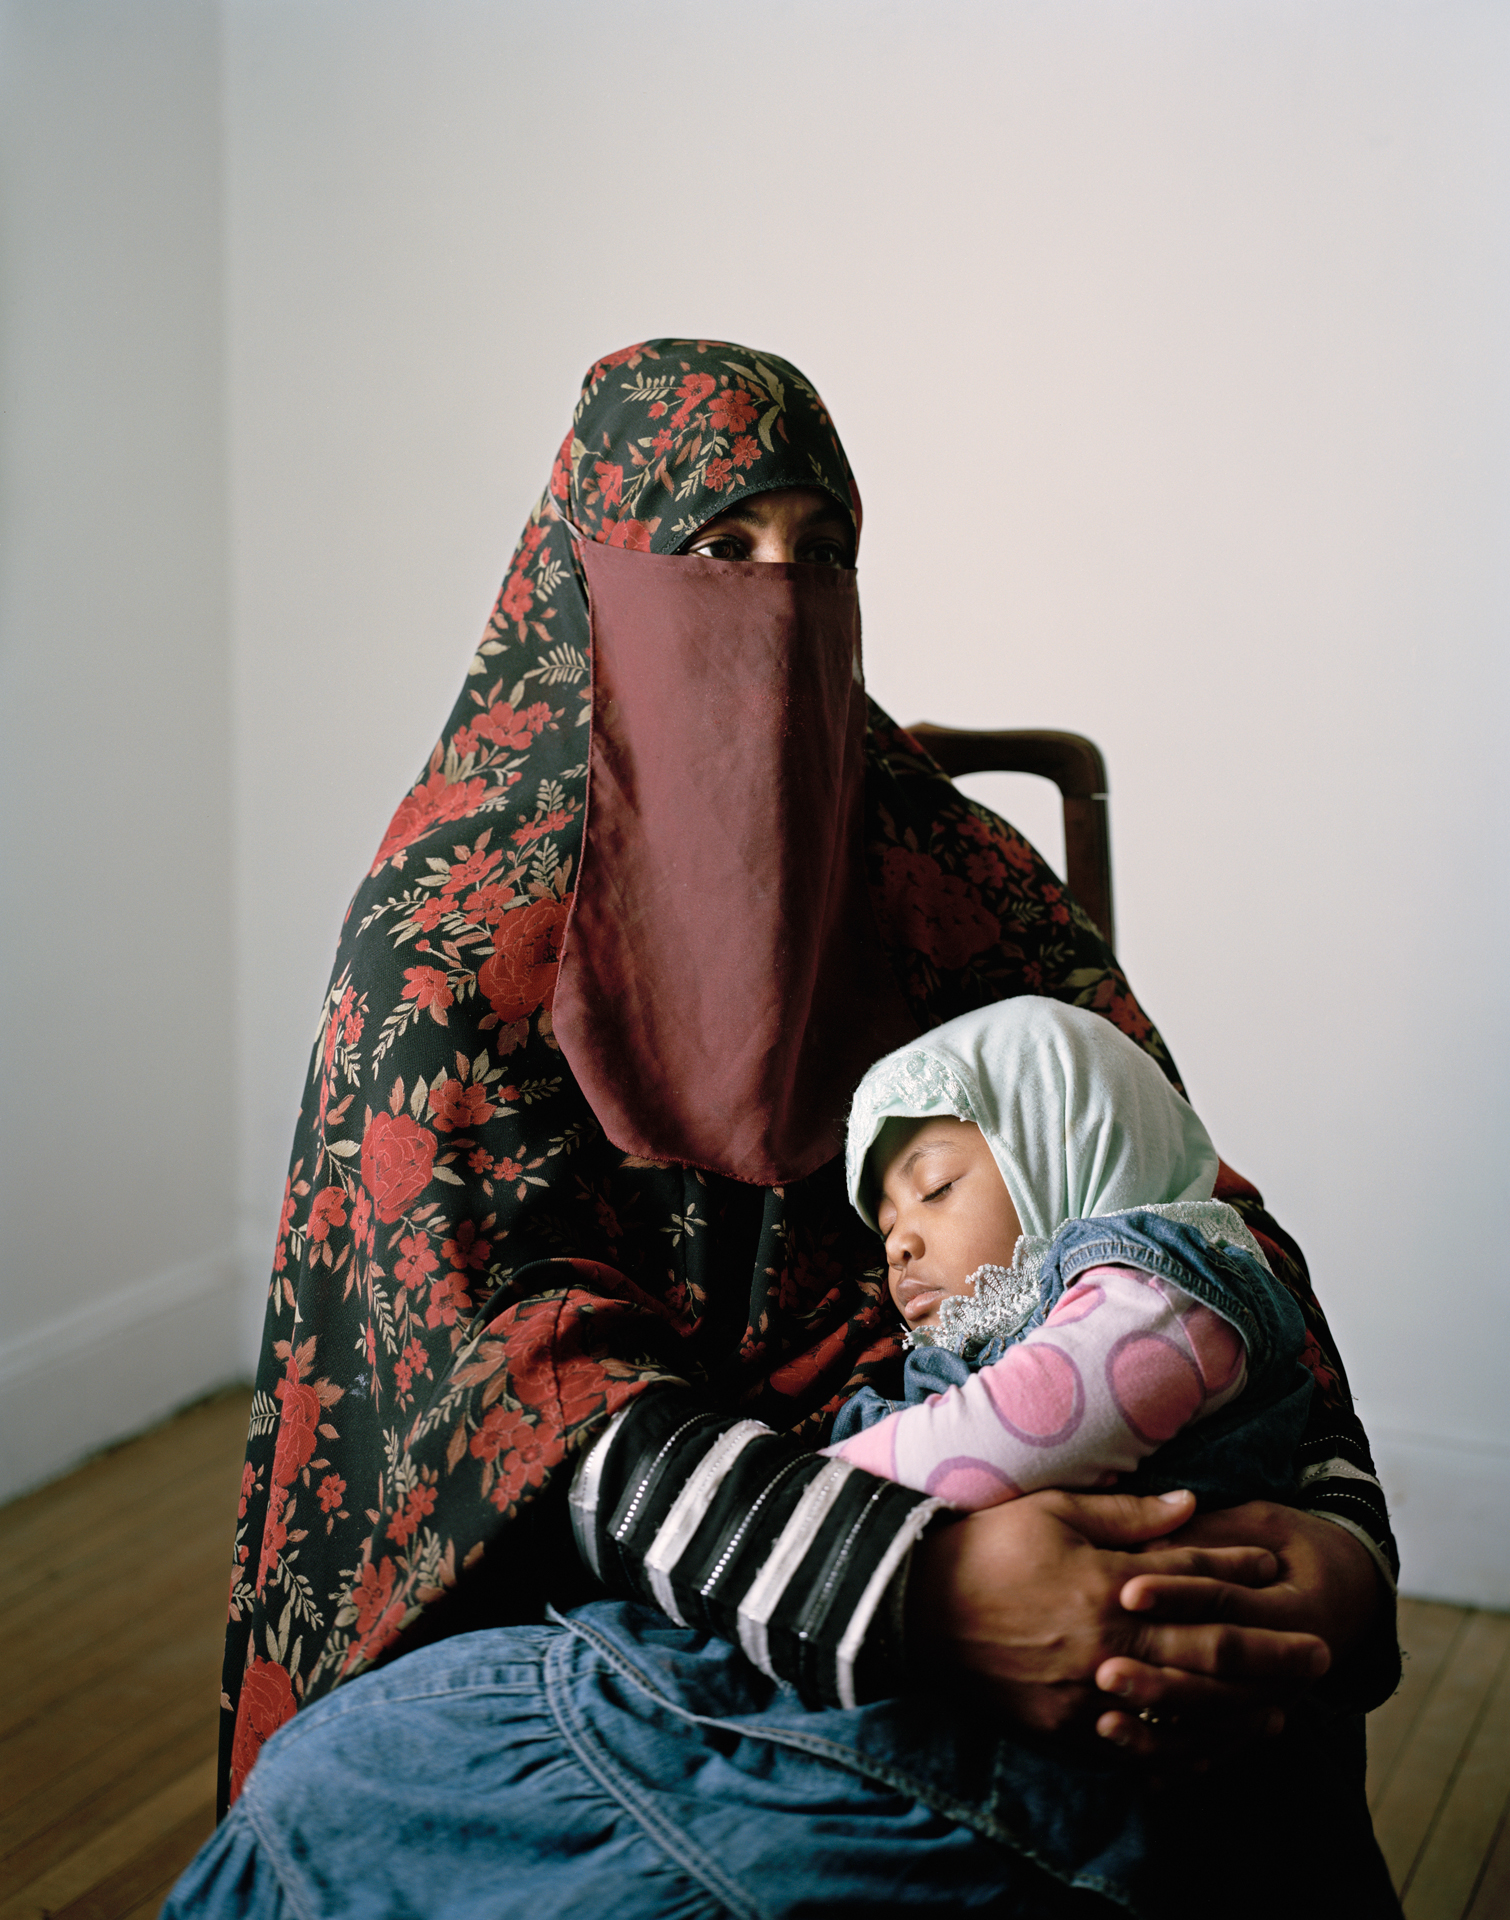 Woman in head covering, with small child